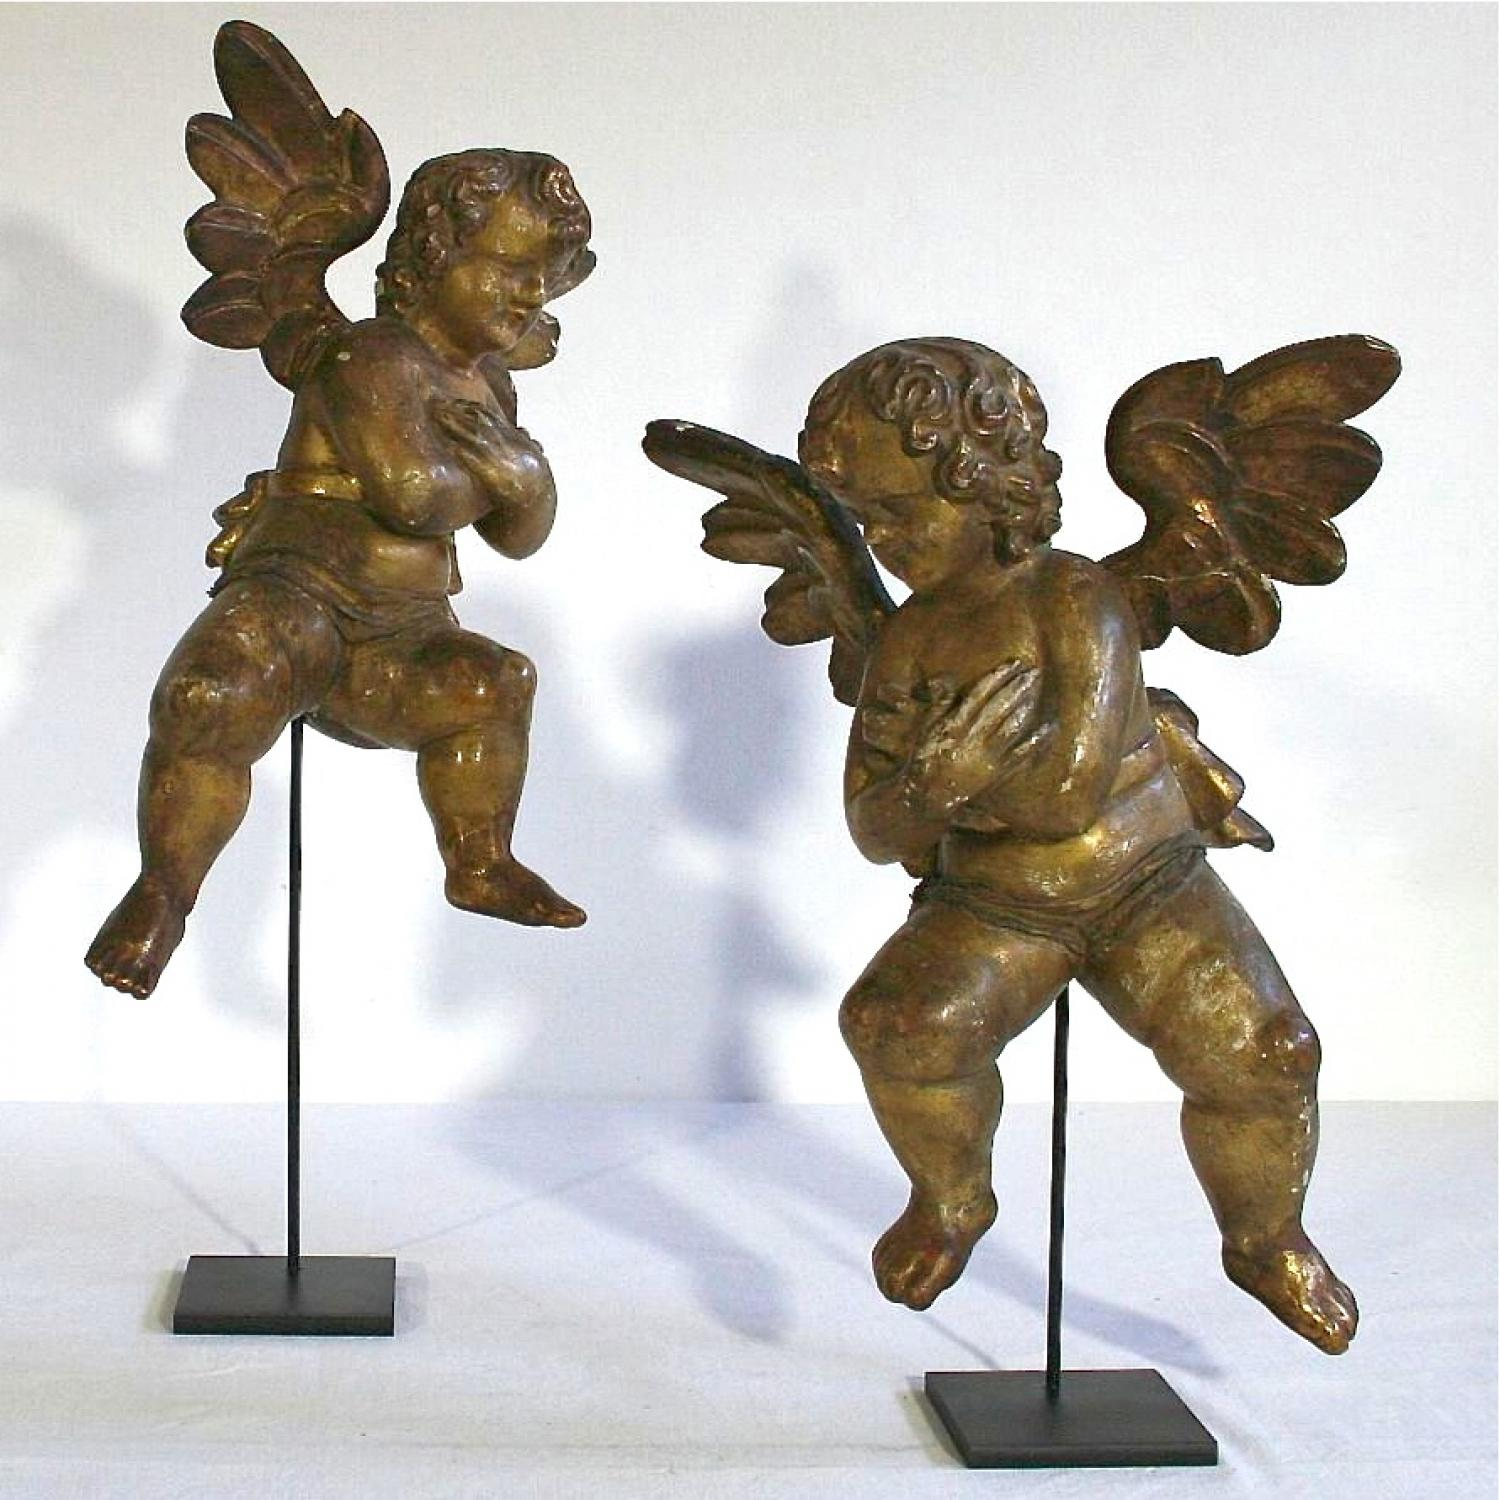 PAIR OF RARE 18TH CENTURY GILDED ITALIAN ANGELS